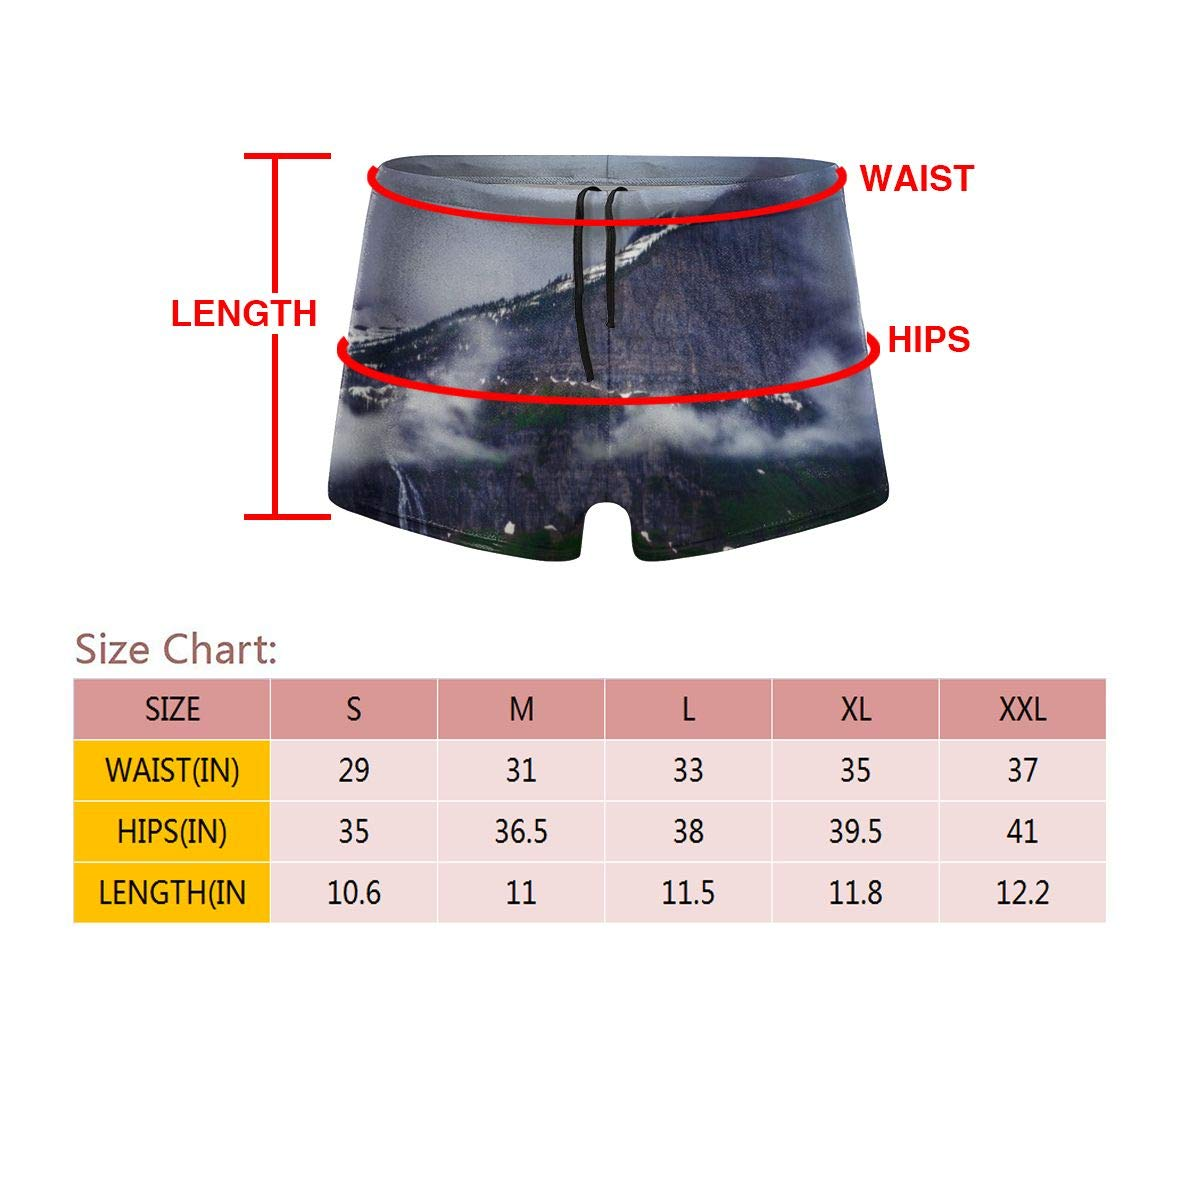 G66TCX Mens Swim Trunks Art Print Summer Quick Dry Surfing Board Trunk Camo Shorts Swim Underwear